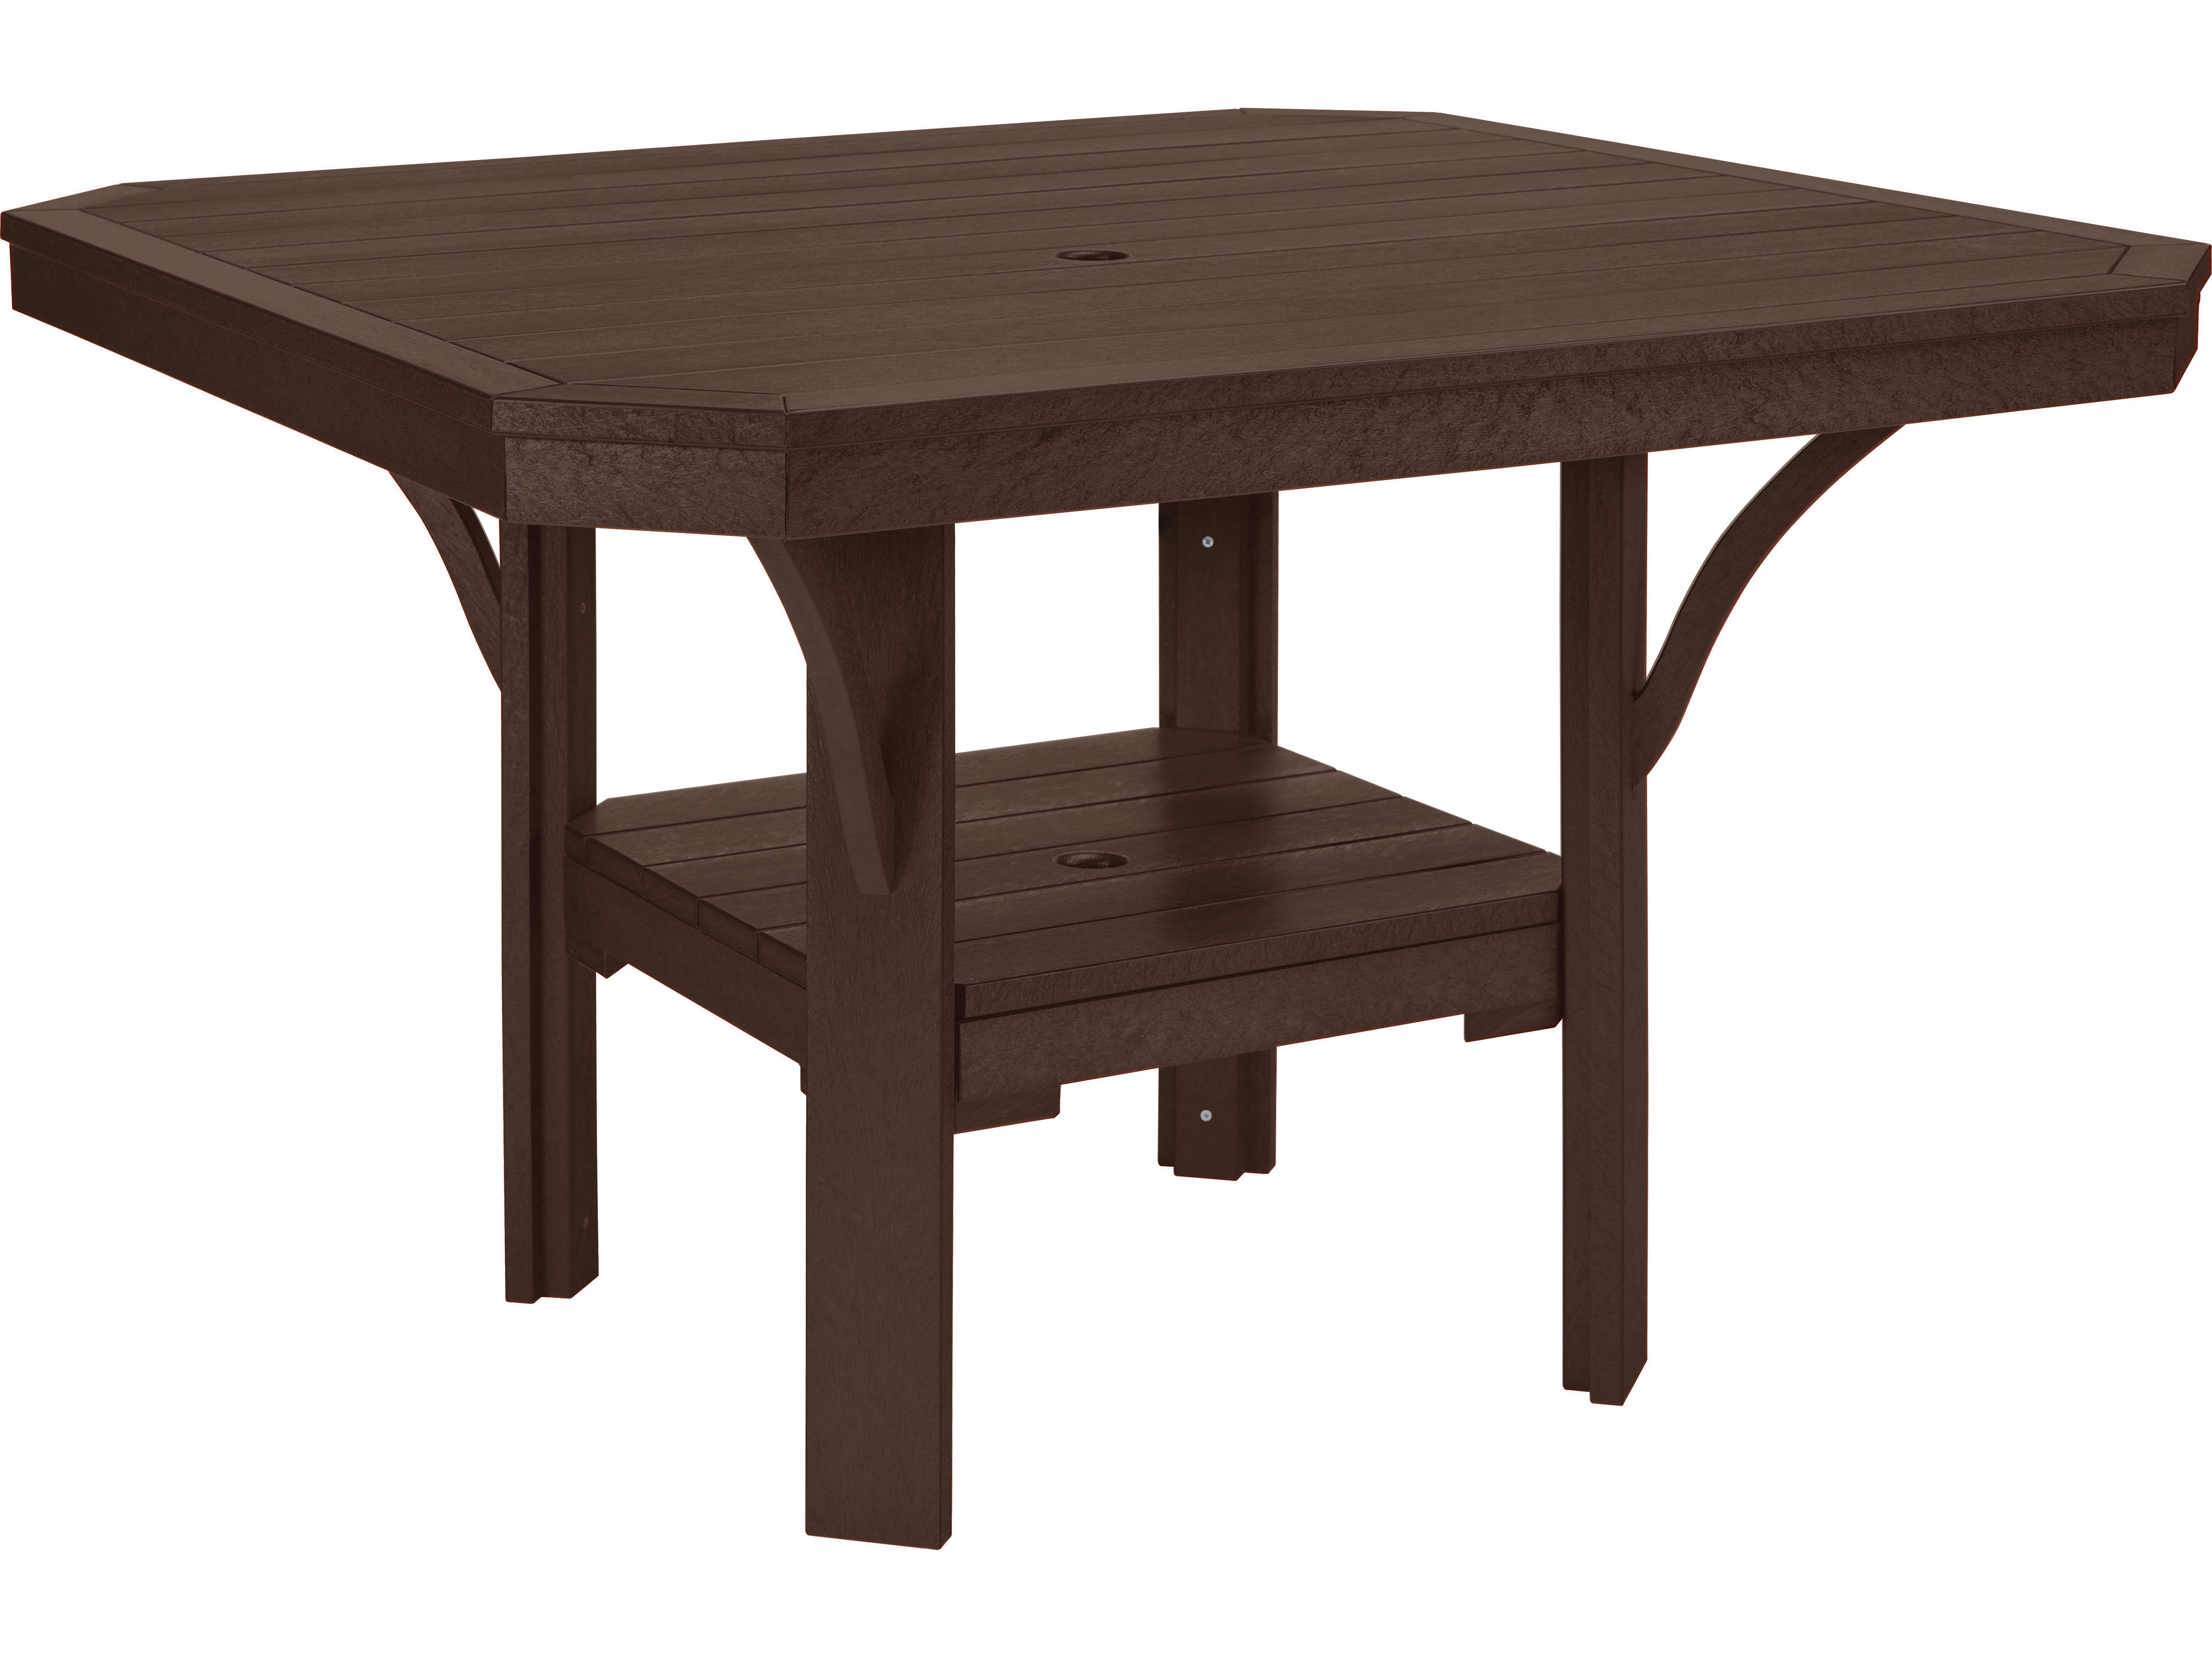 CR Plastic St Tropez 45 Square Dining Table T35 : CRT358zm from www.patioliving.com size 3043 x 2283 jpeg 235kB